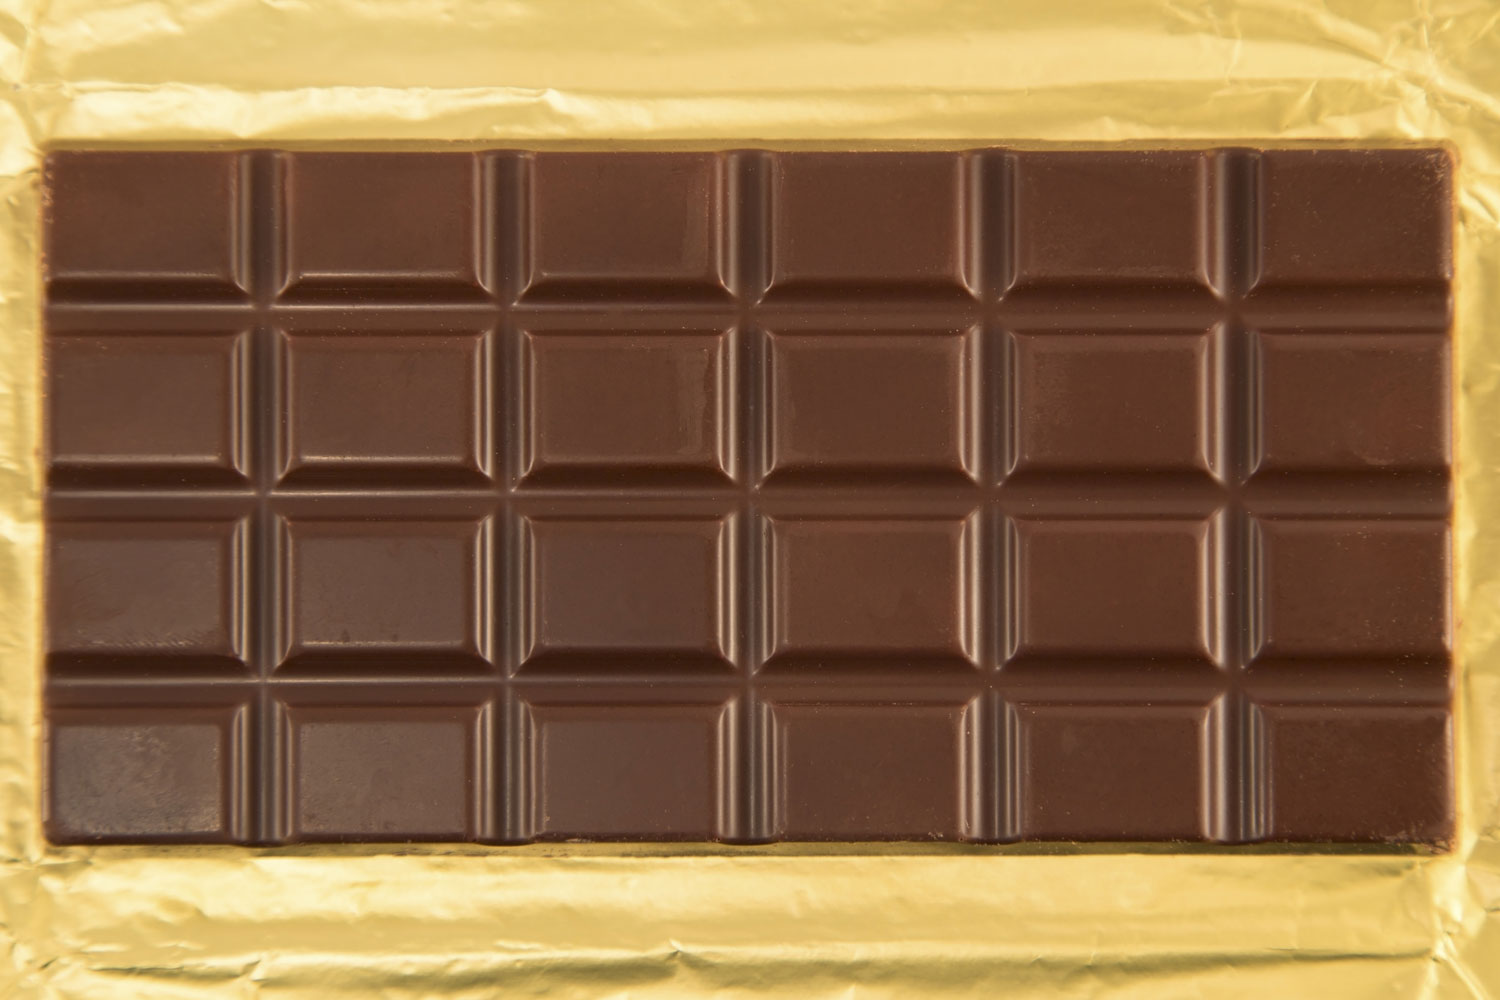 Does Chocolate Give You Energy? | LIVESTRONG.COM